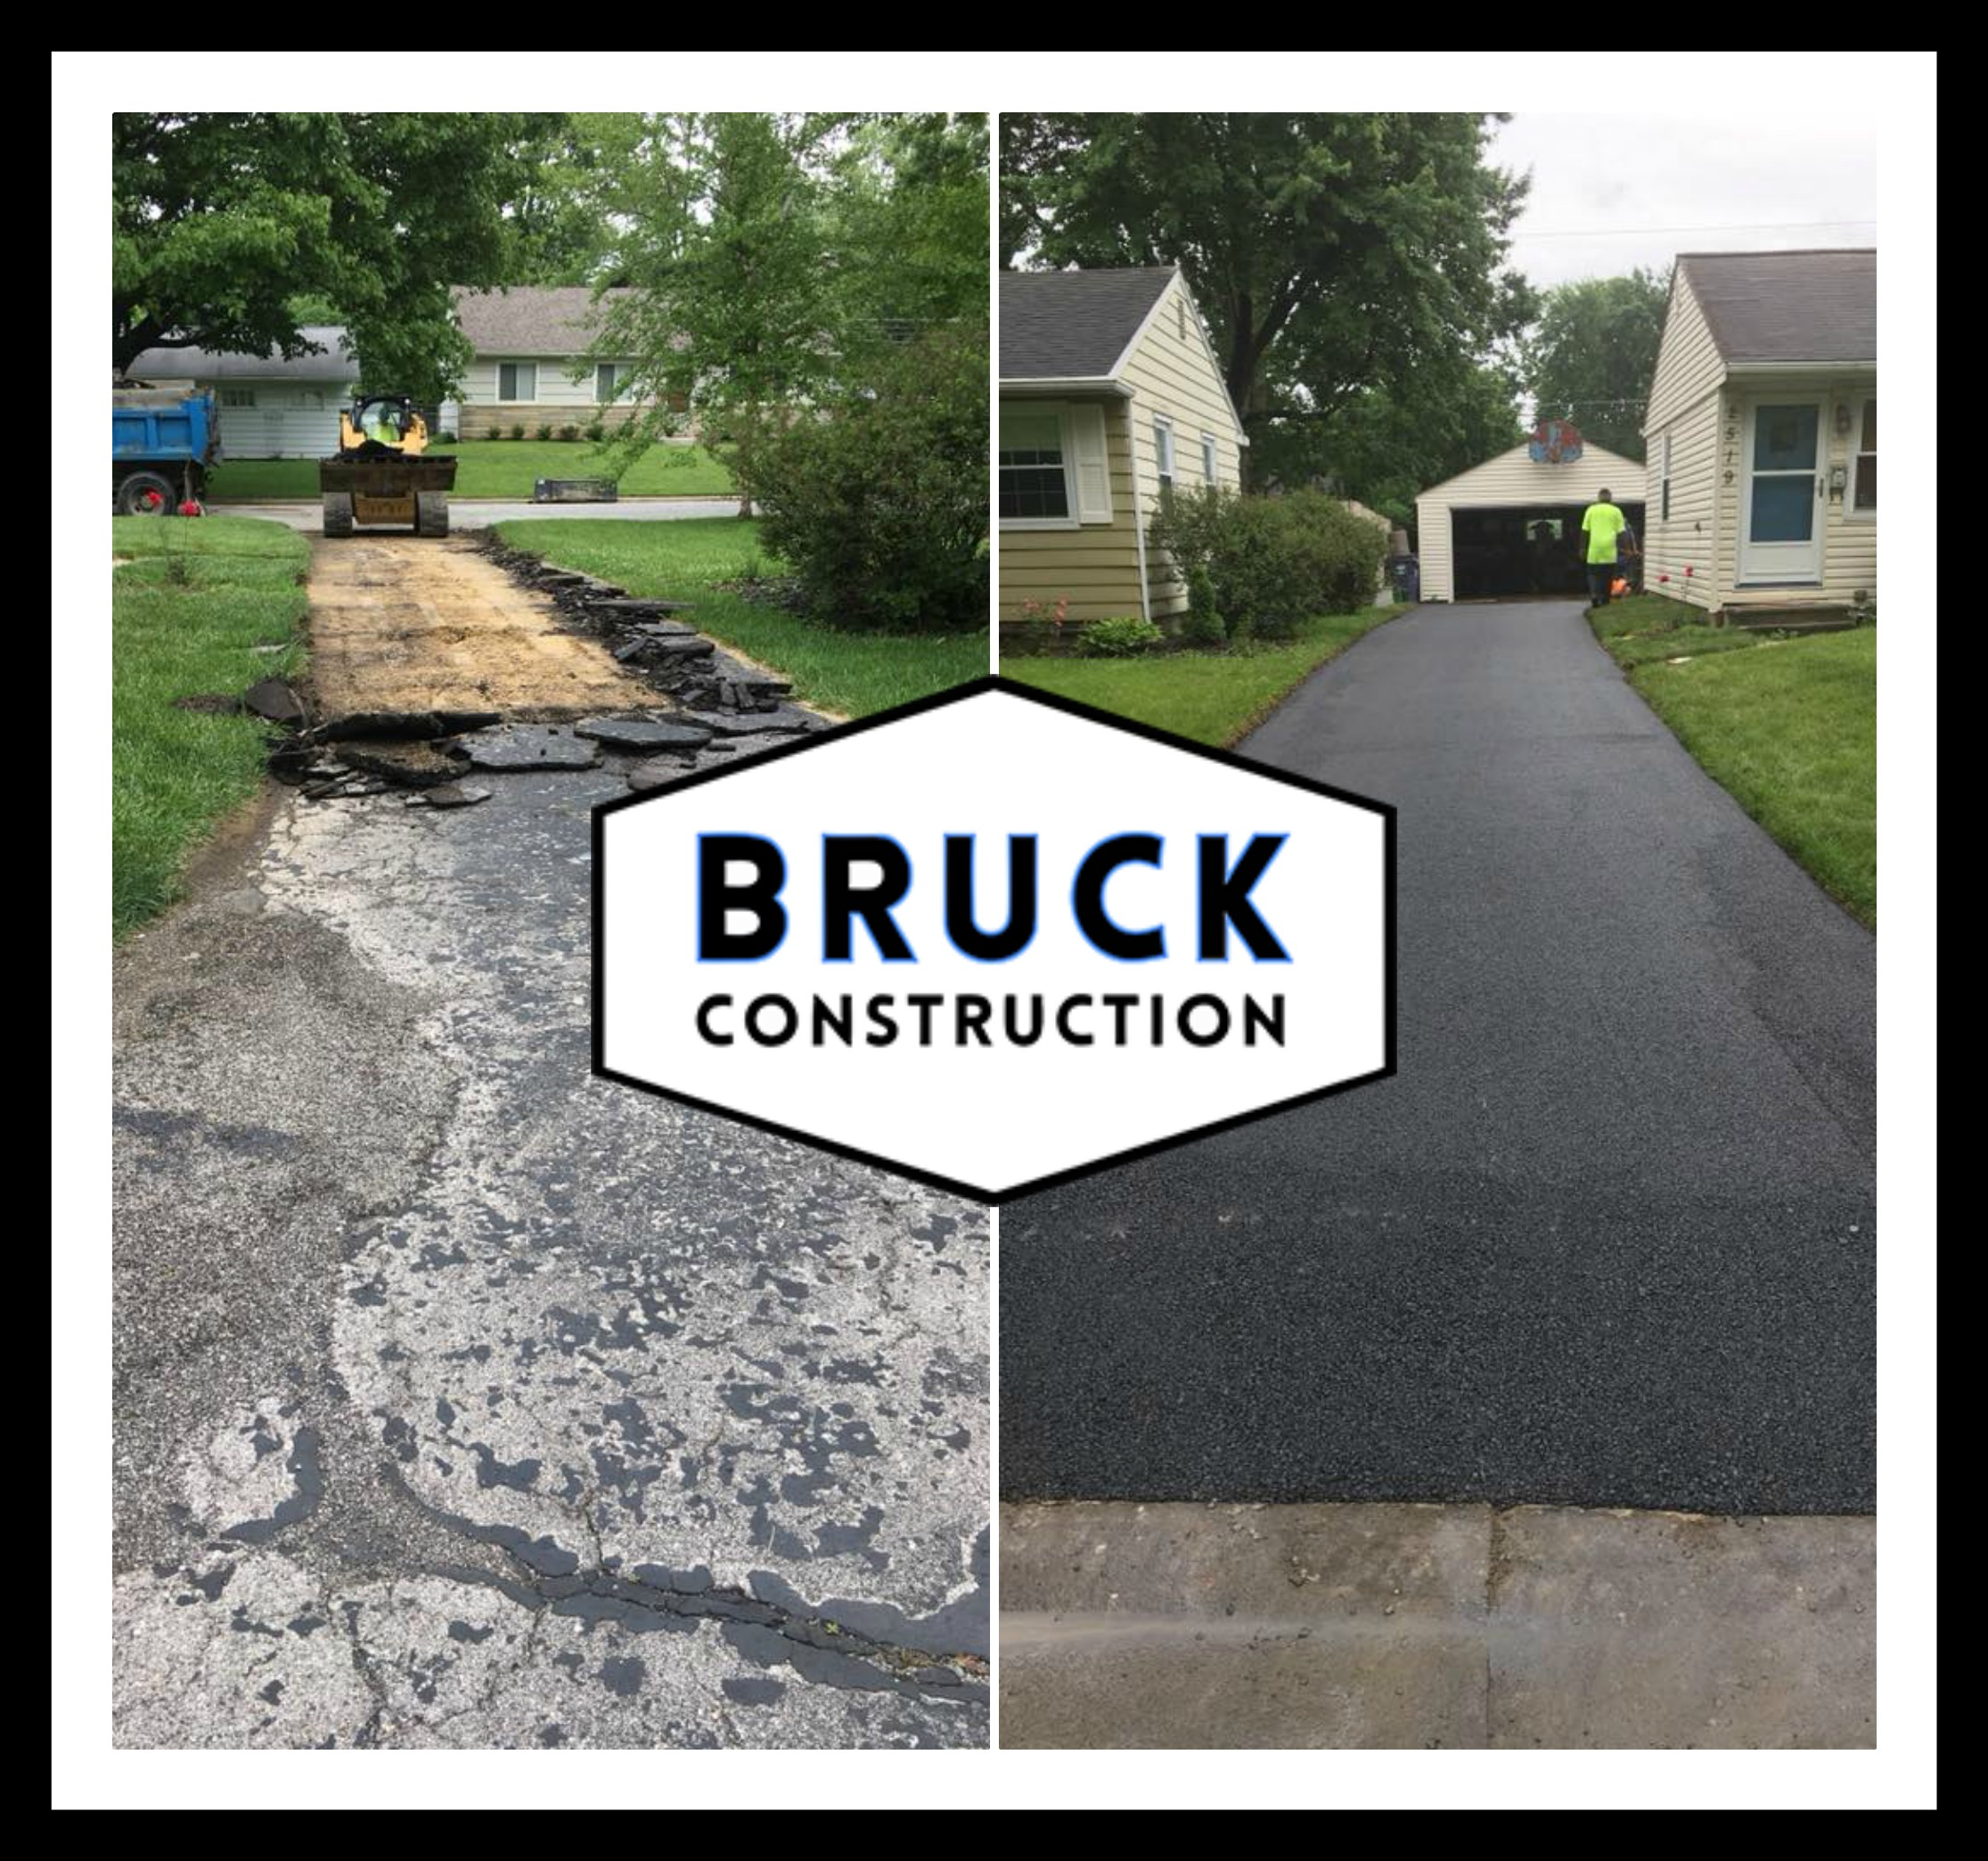 Bruck Construction - Before and After work